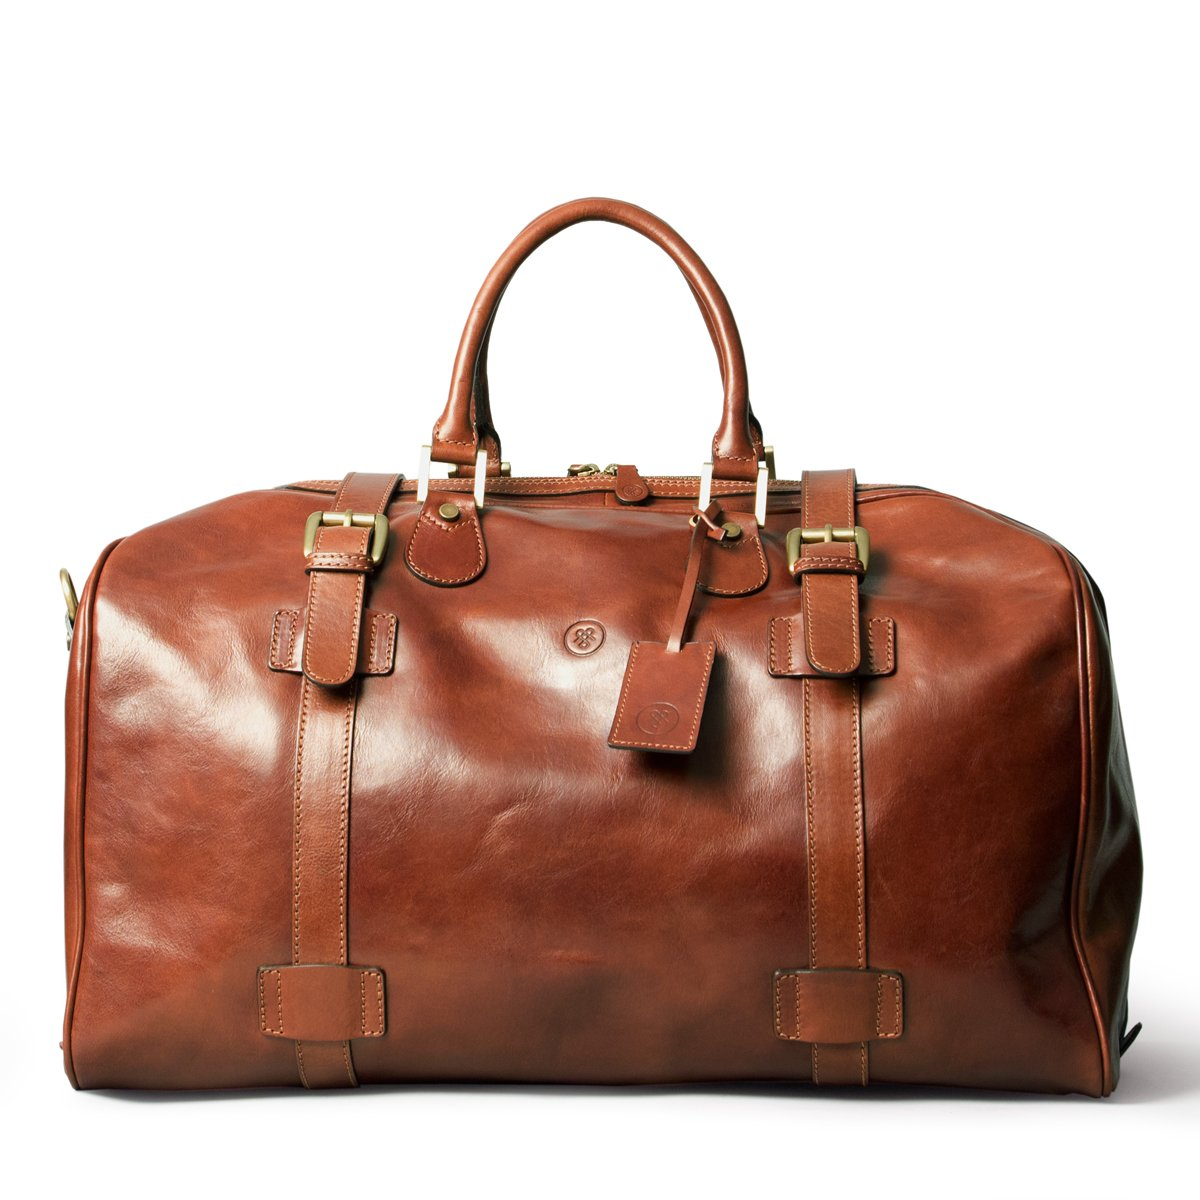 Maxwell Scott® Personalised Luxury Tan Leather Suitcase (The FleroL) - Large by Maxwell Scott Bags